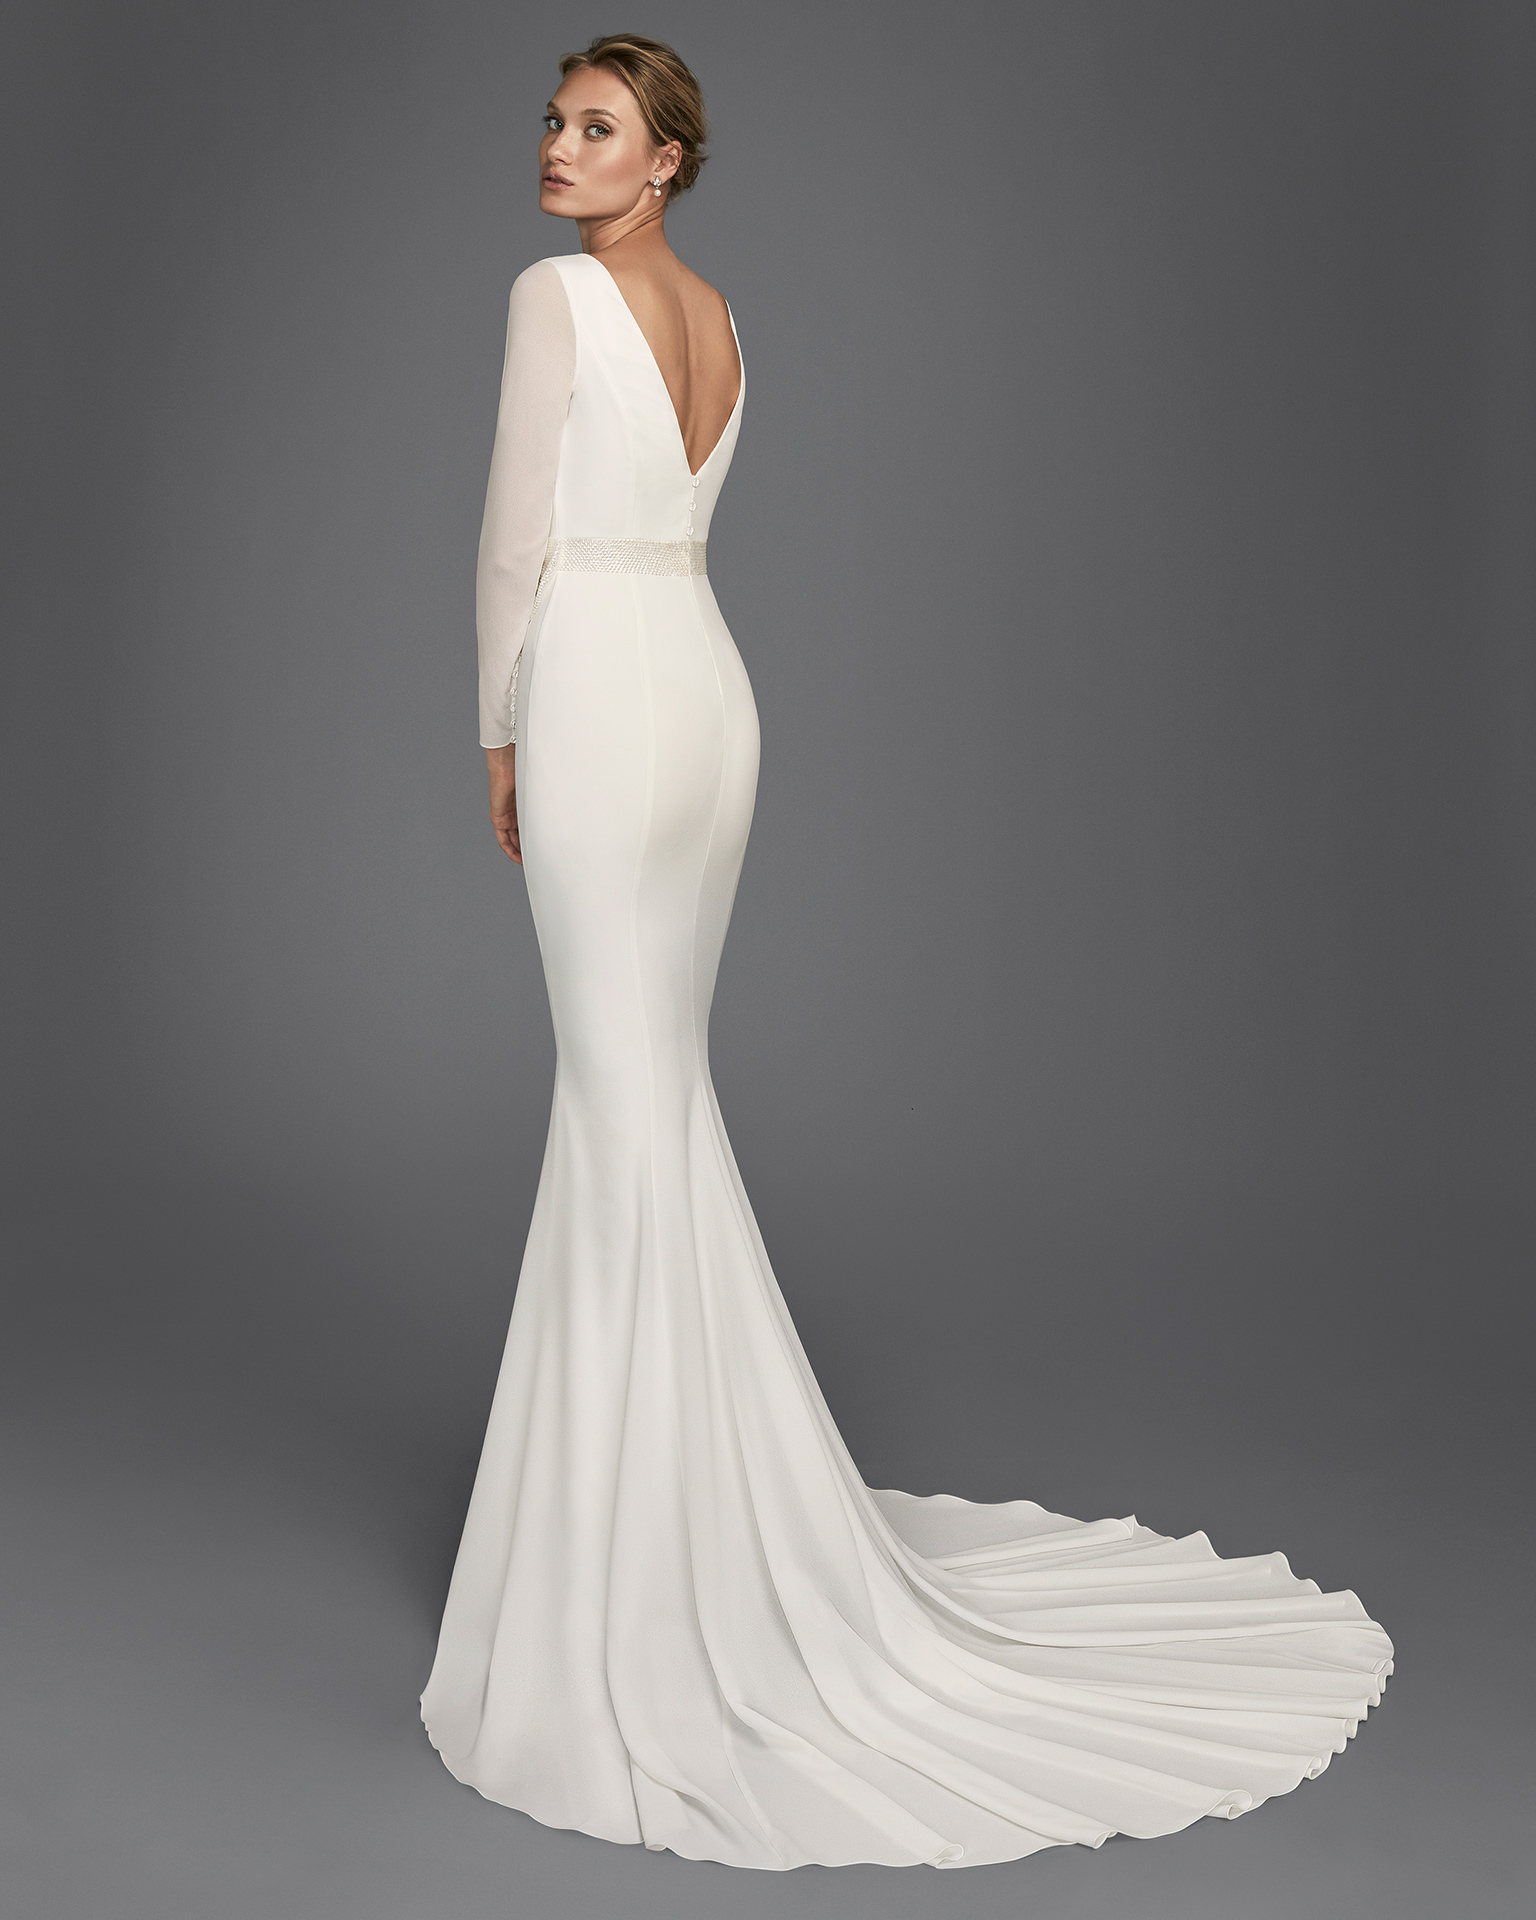 Mermaid-style crepe Georgette wedding dress with long sleeves and V-back with bow and beaded appliqués.